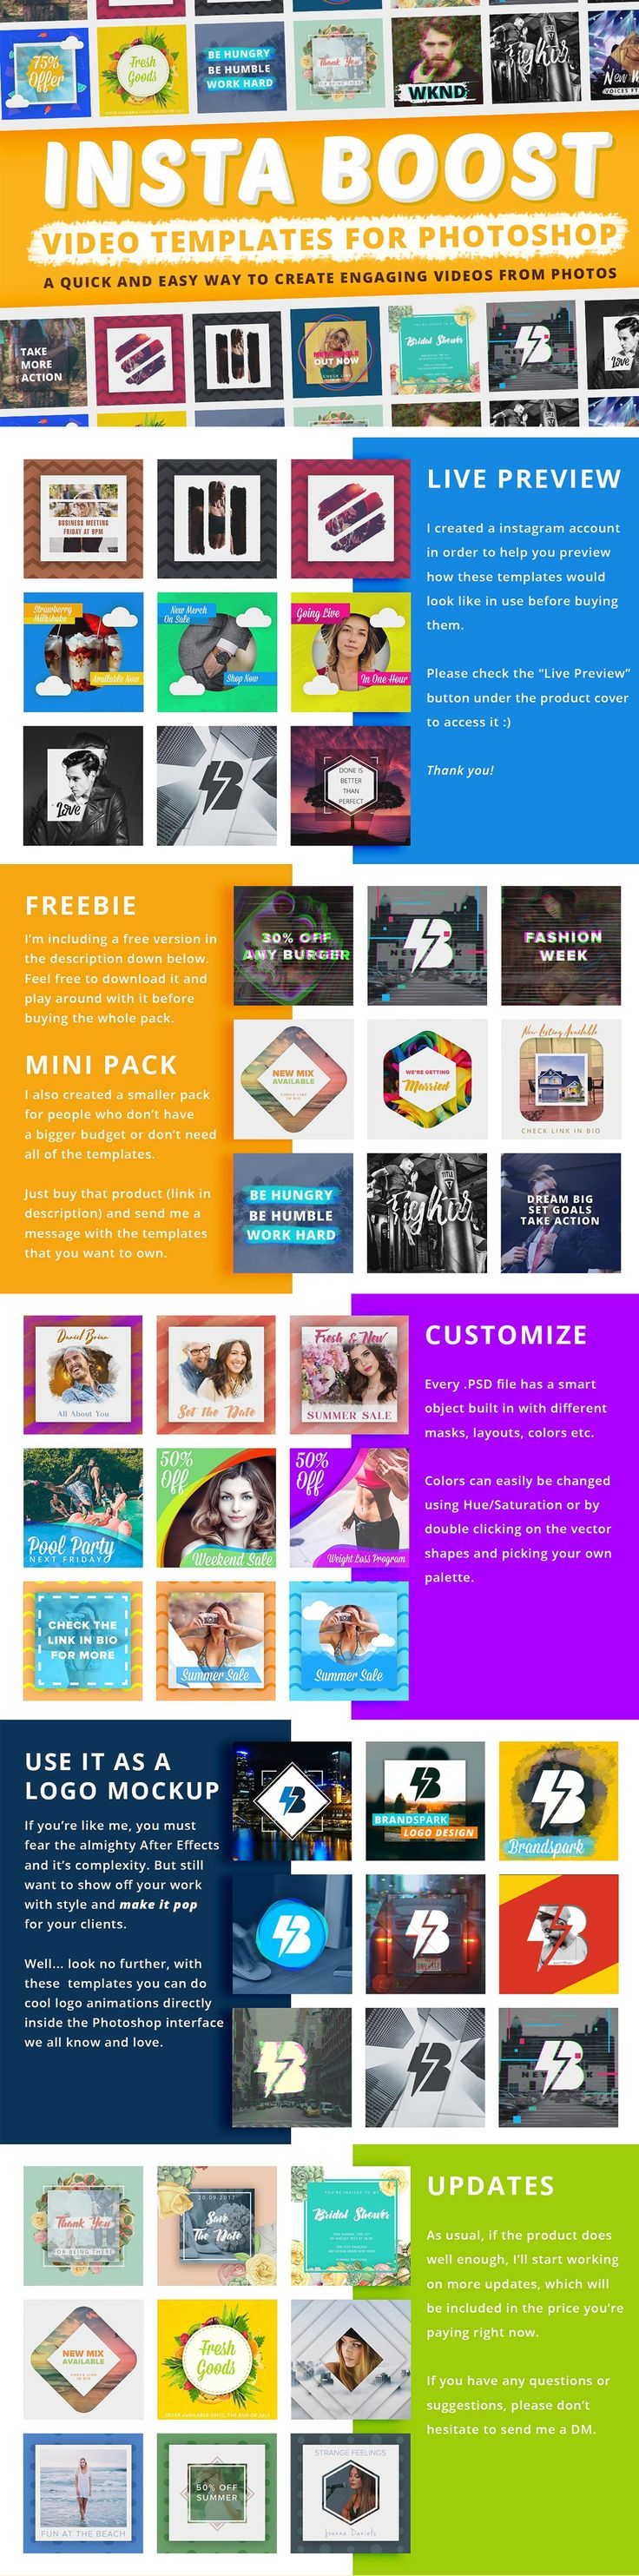 Animated #Instagram Graphics Bundle | Video #templates for #photoshop